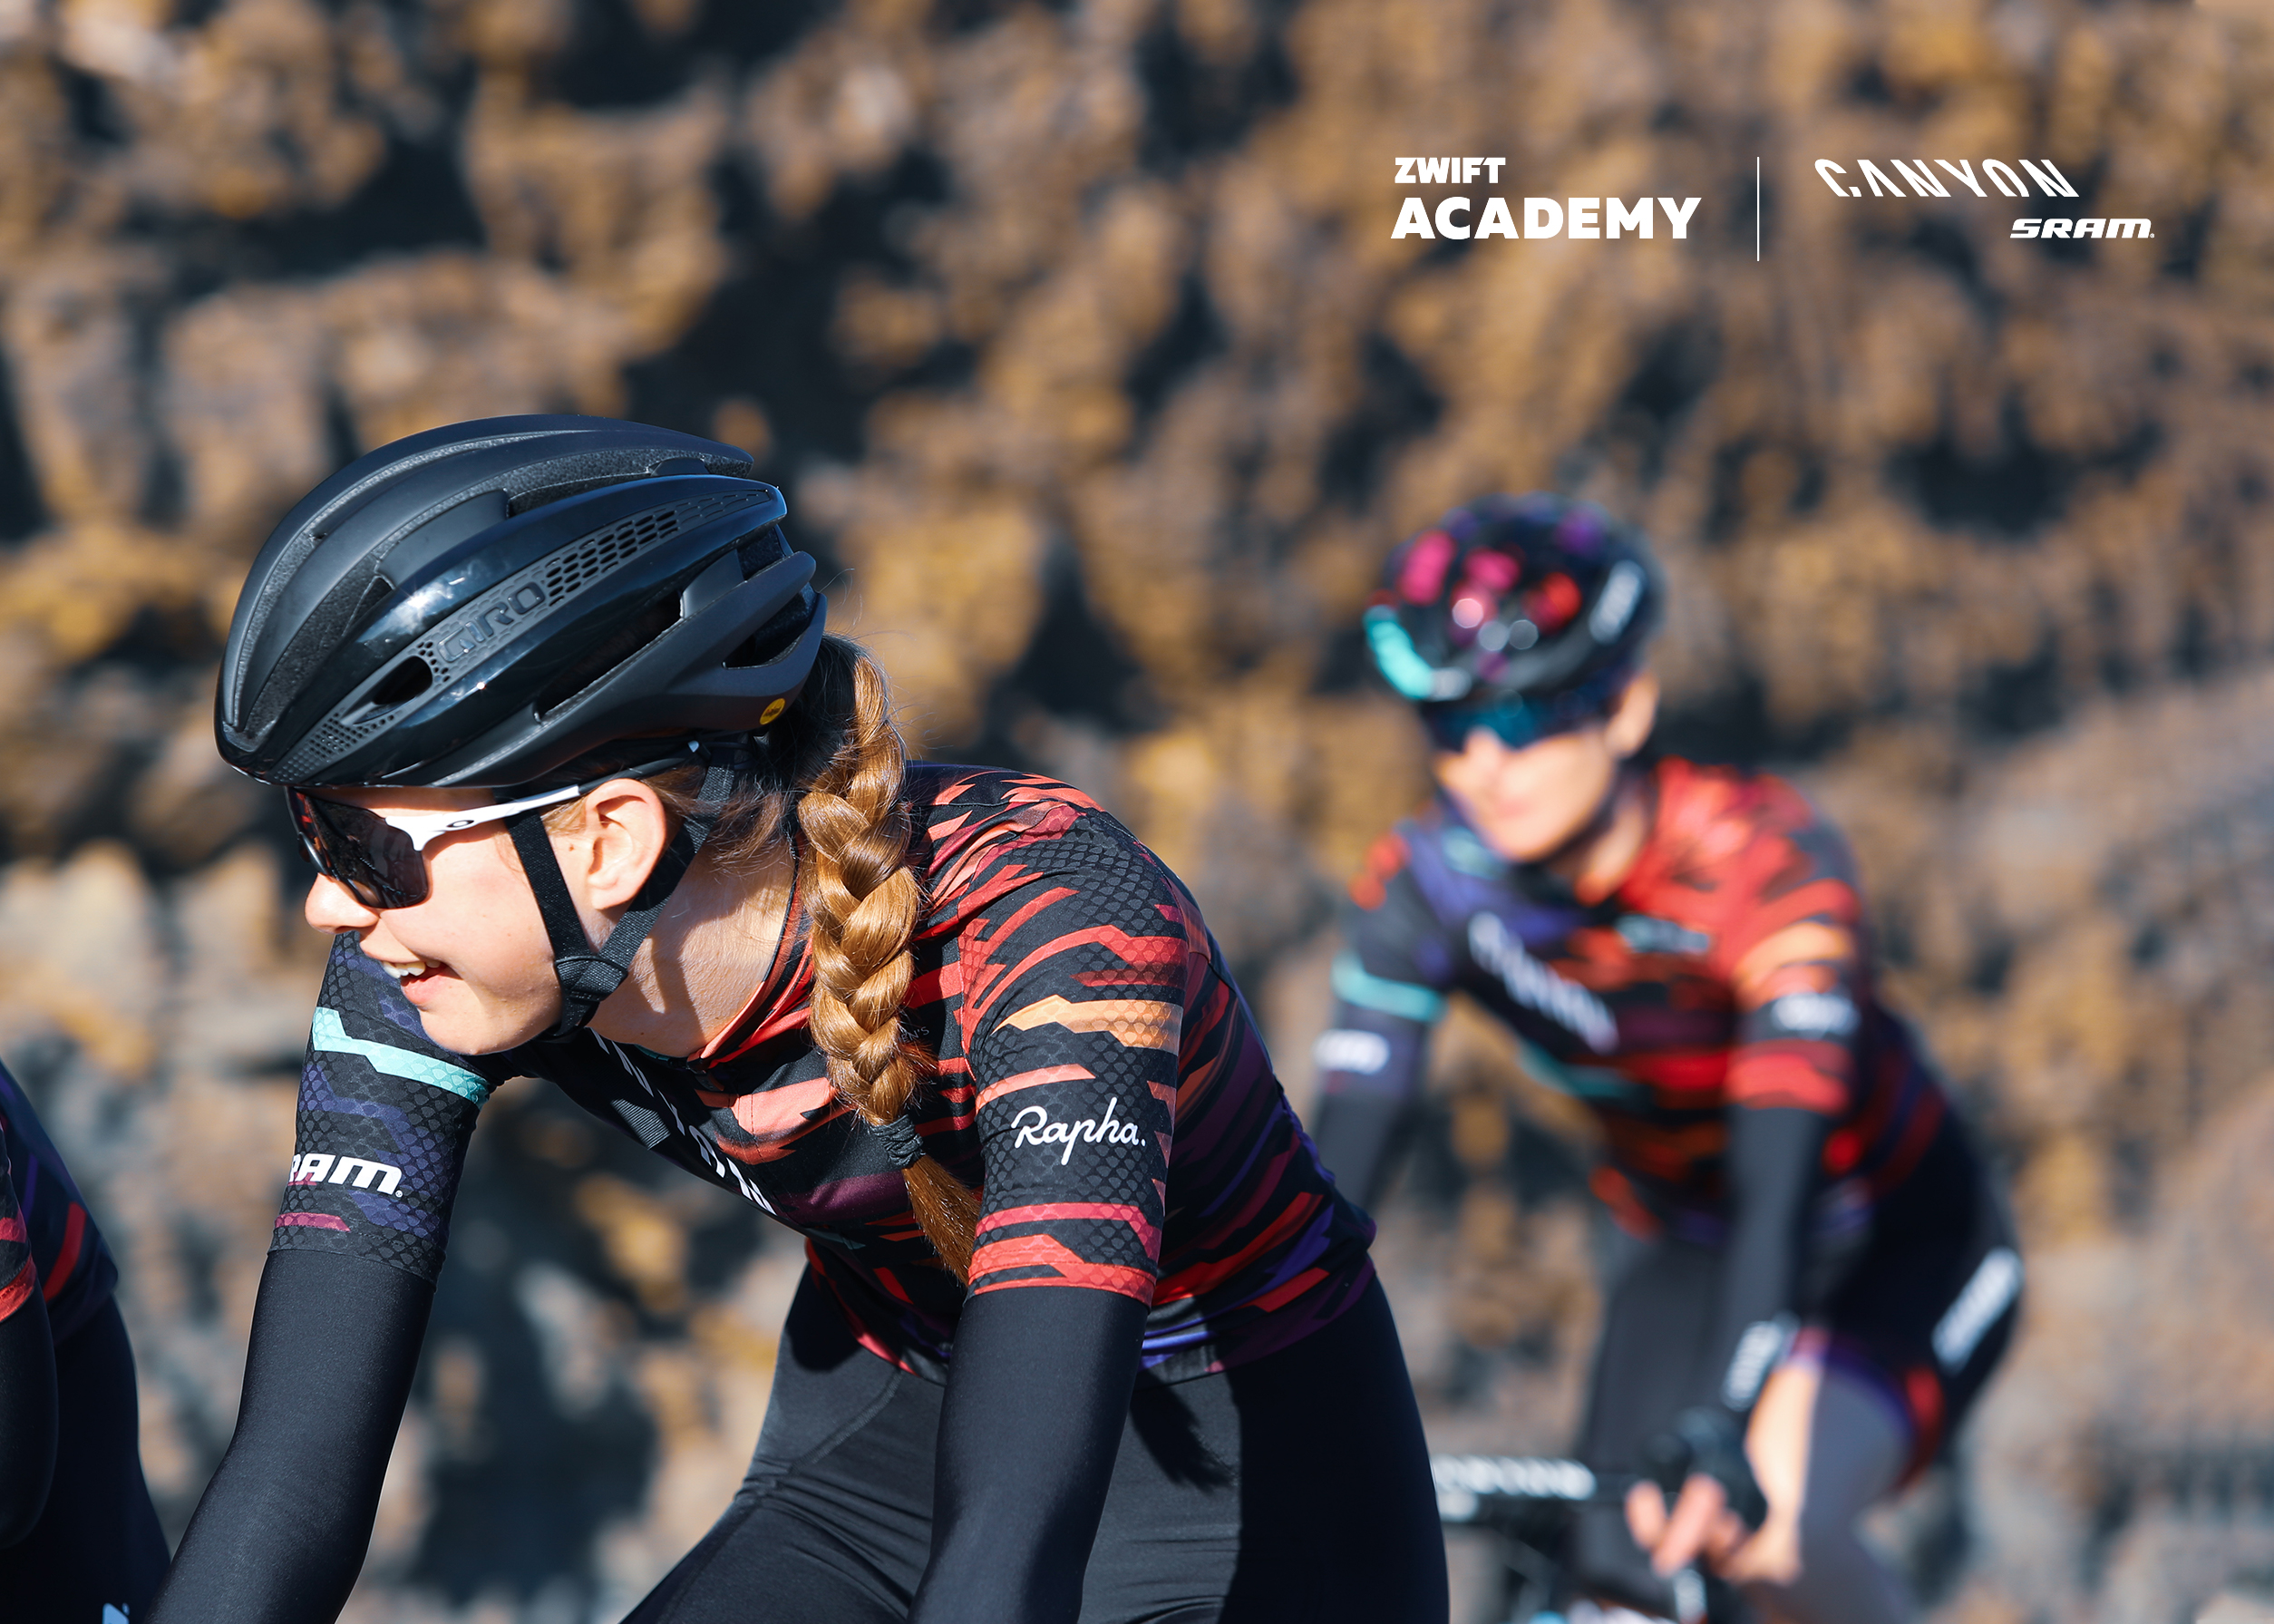 Zwift Academy semi-finalists announced after biggest ever female field